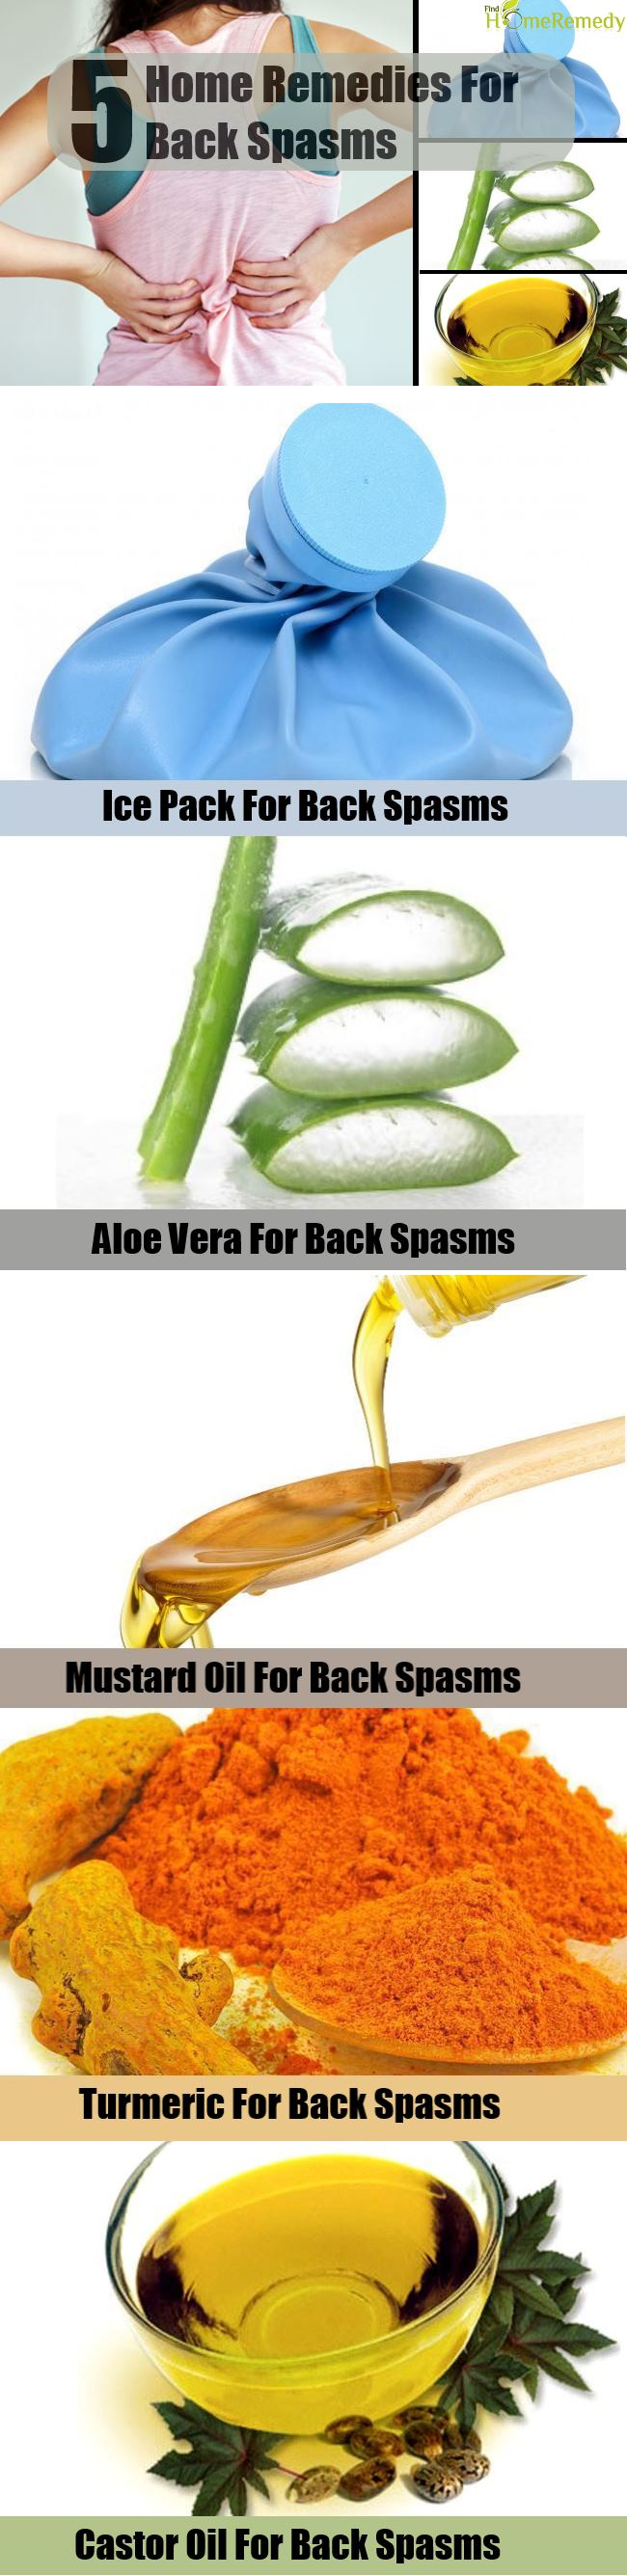 5 Home Remedies For Back Spasms